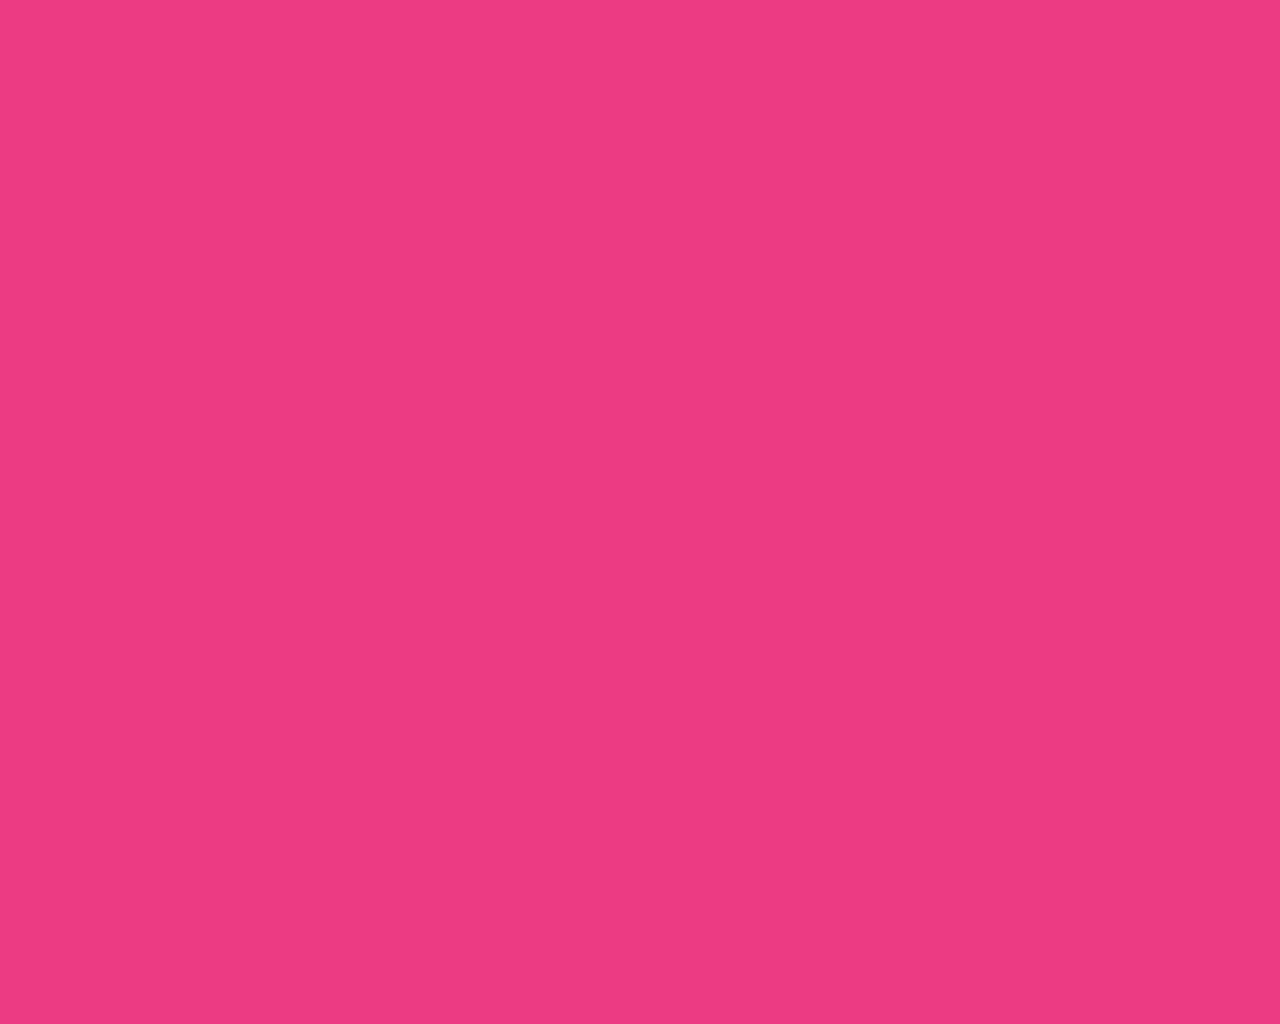 Pink Color Wallpaper